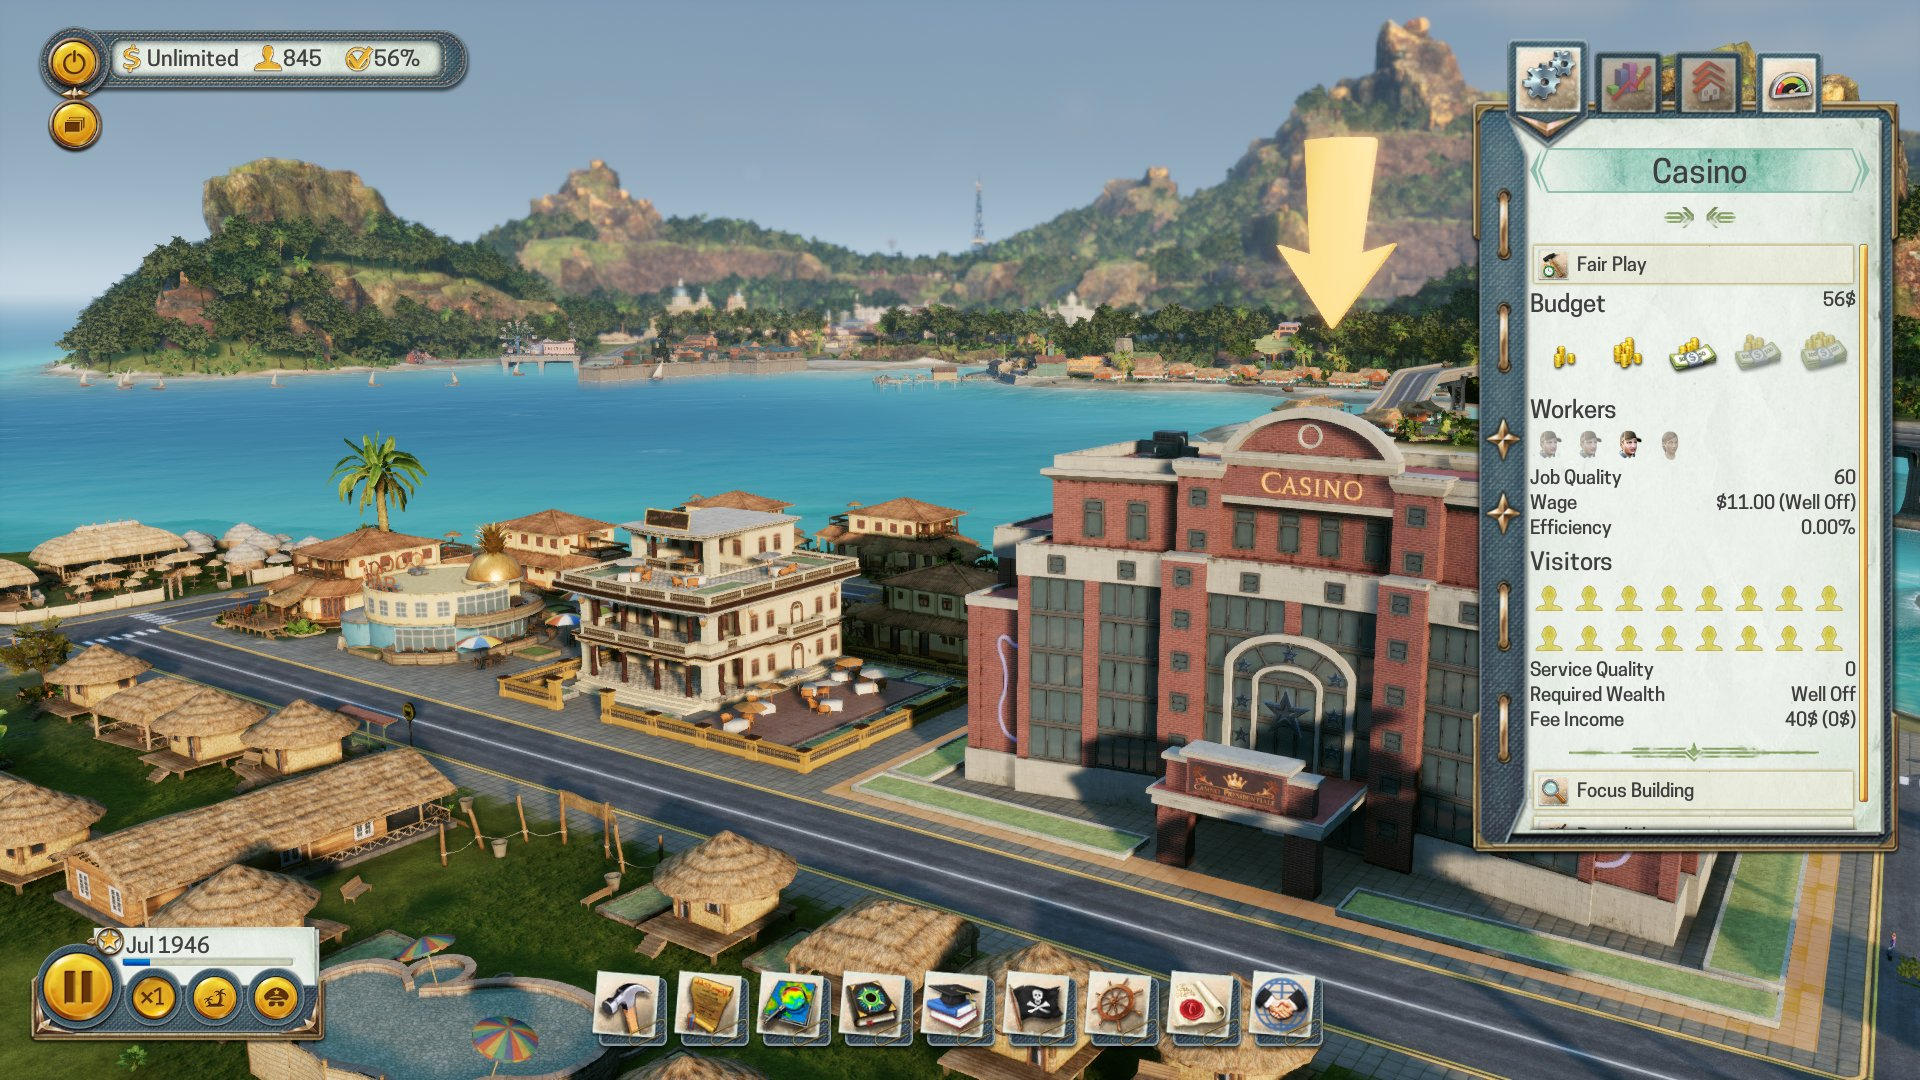 Tropico6-Win64-Test 2017-08-14 16-07-01-33